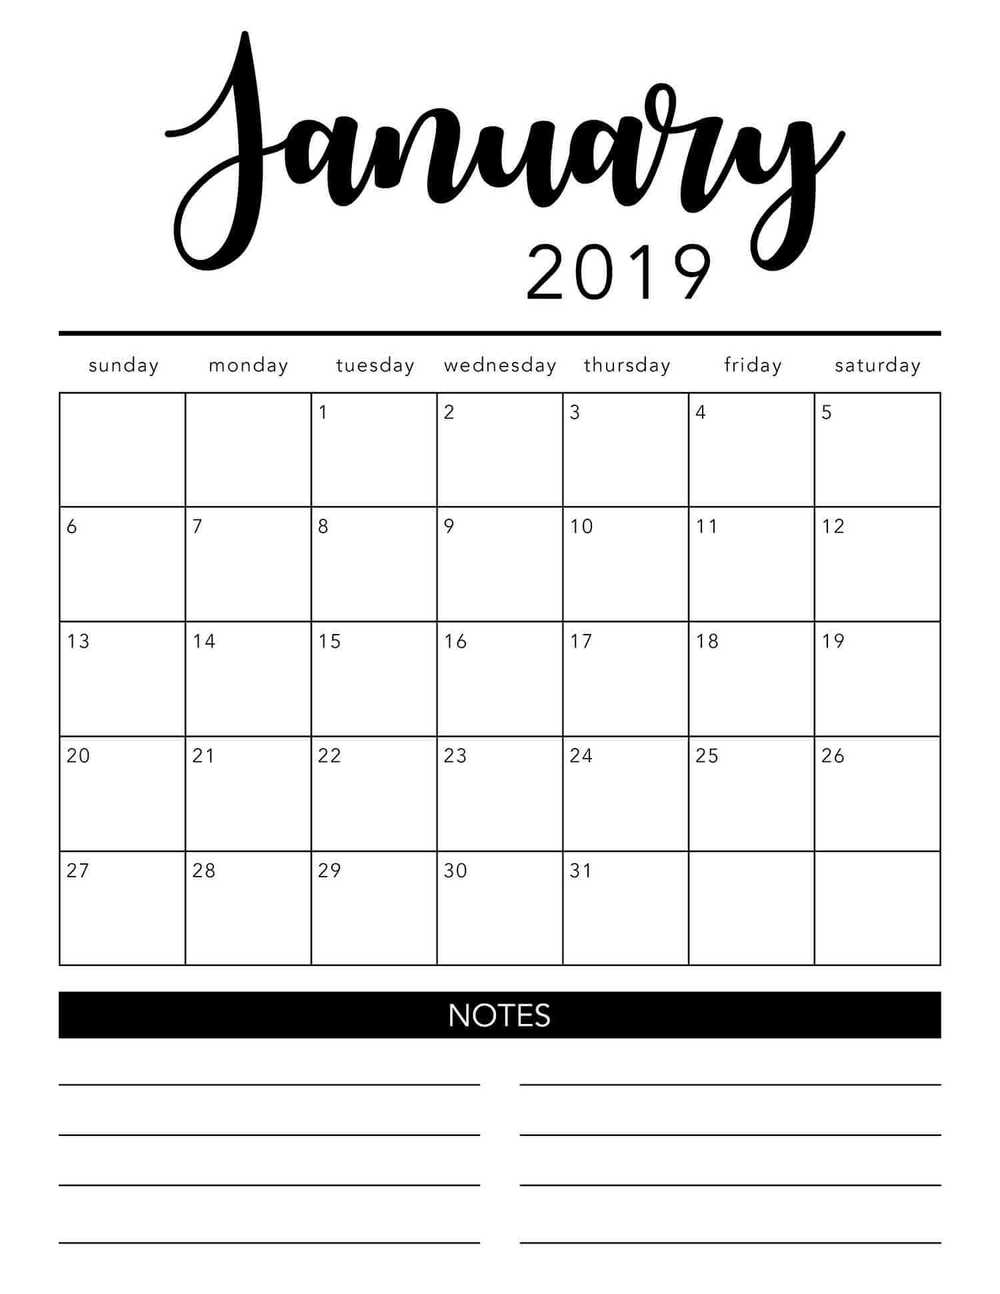 Free Calendars Printable  Bolan.horizonconsulting.co inside Printable Monthly Calendar